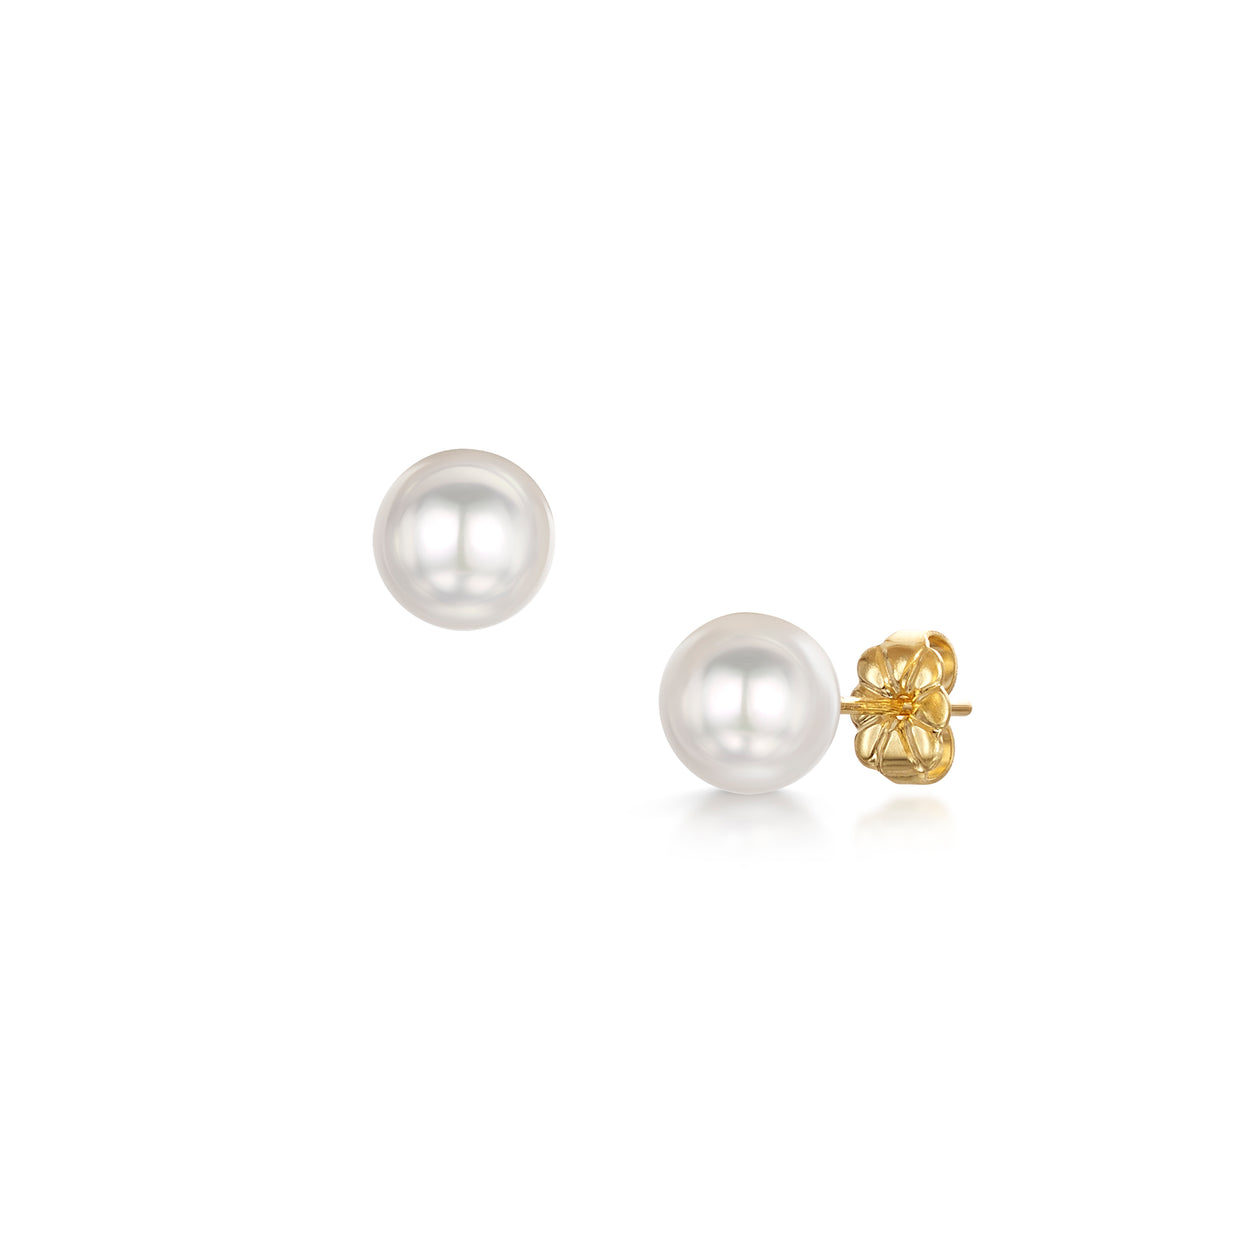 7x7.5mm Pearl Stud Earrings in 18ct Yellow Gold - Hamilton & Inches